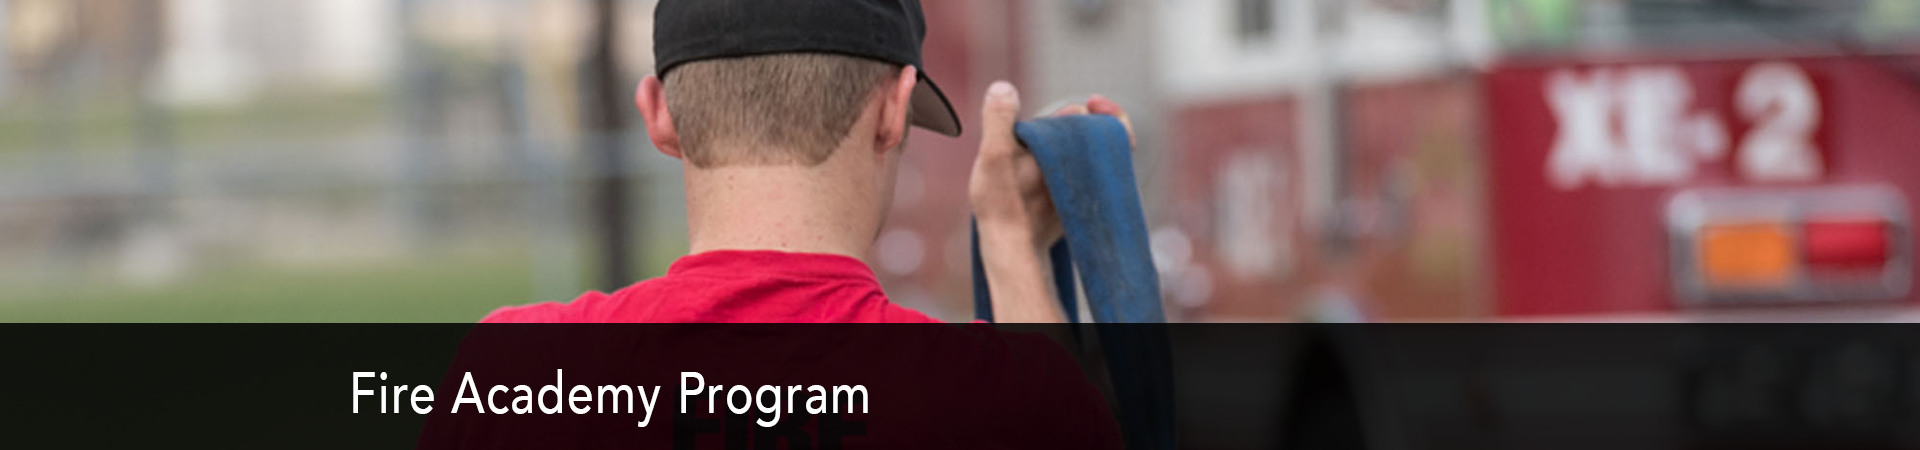 Explore the Fire Academy Program at NC